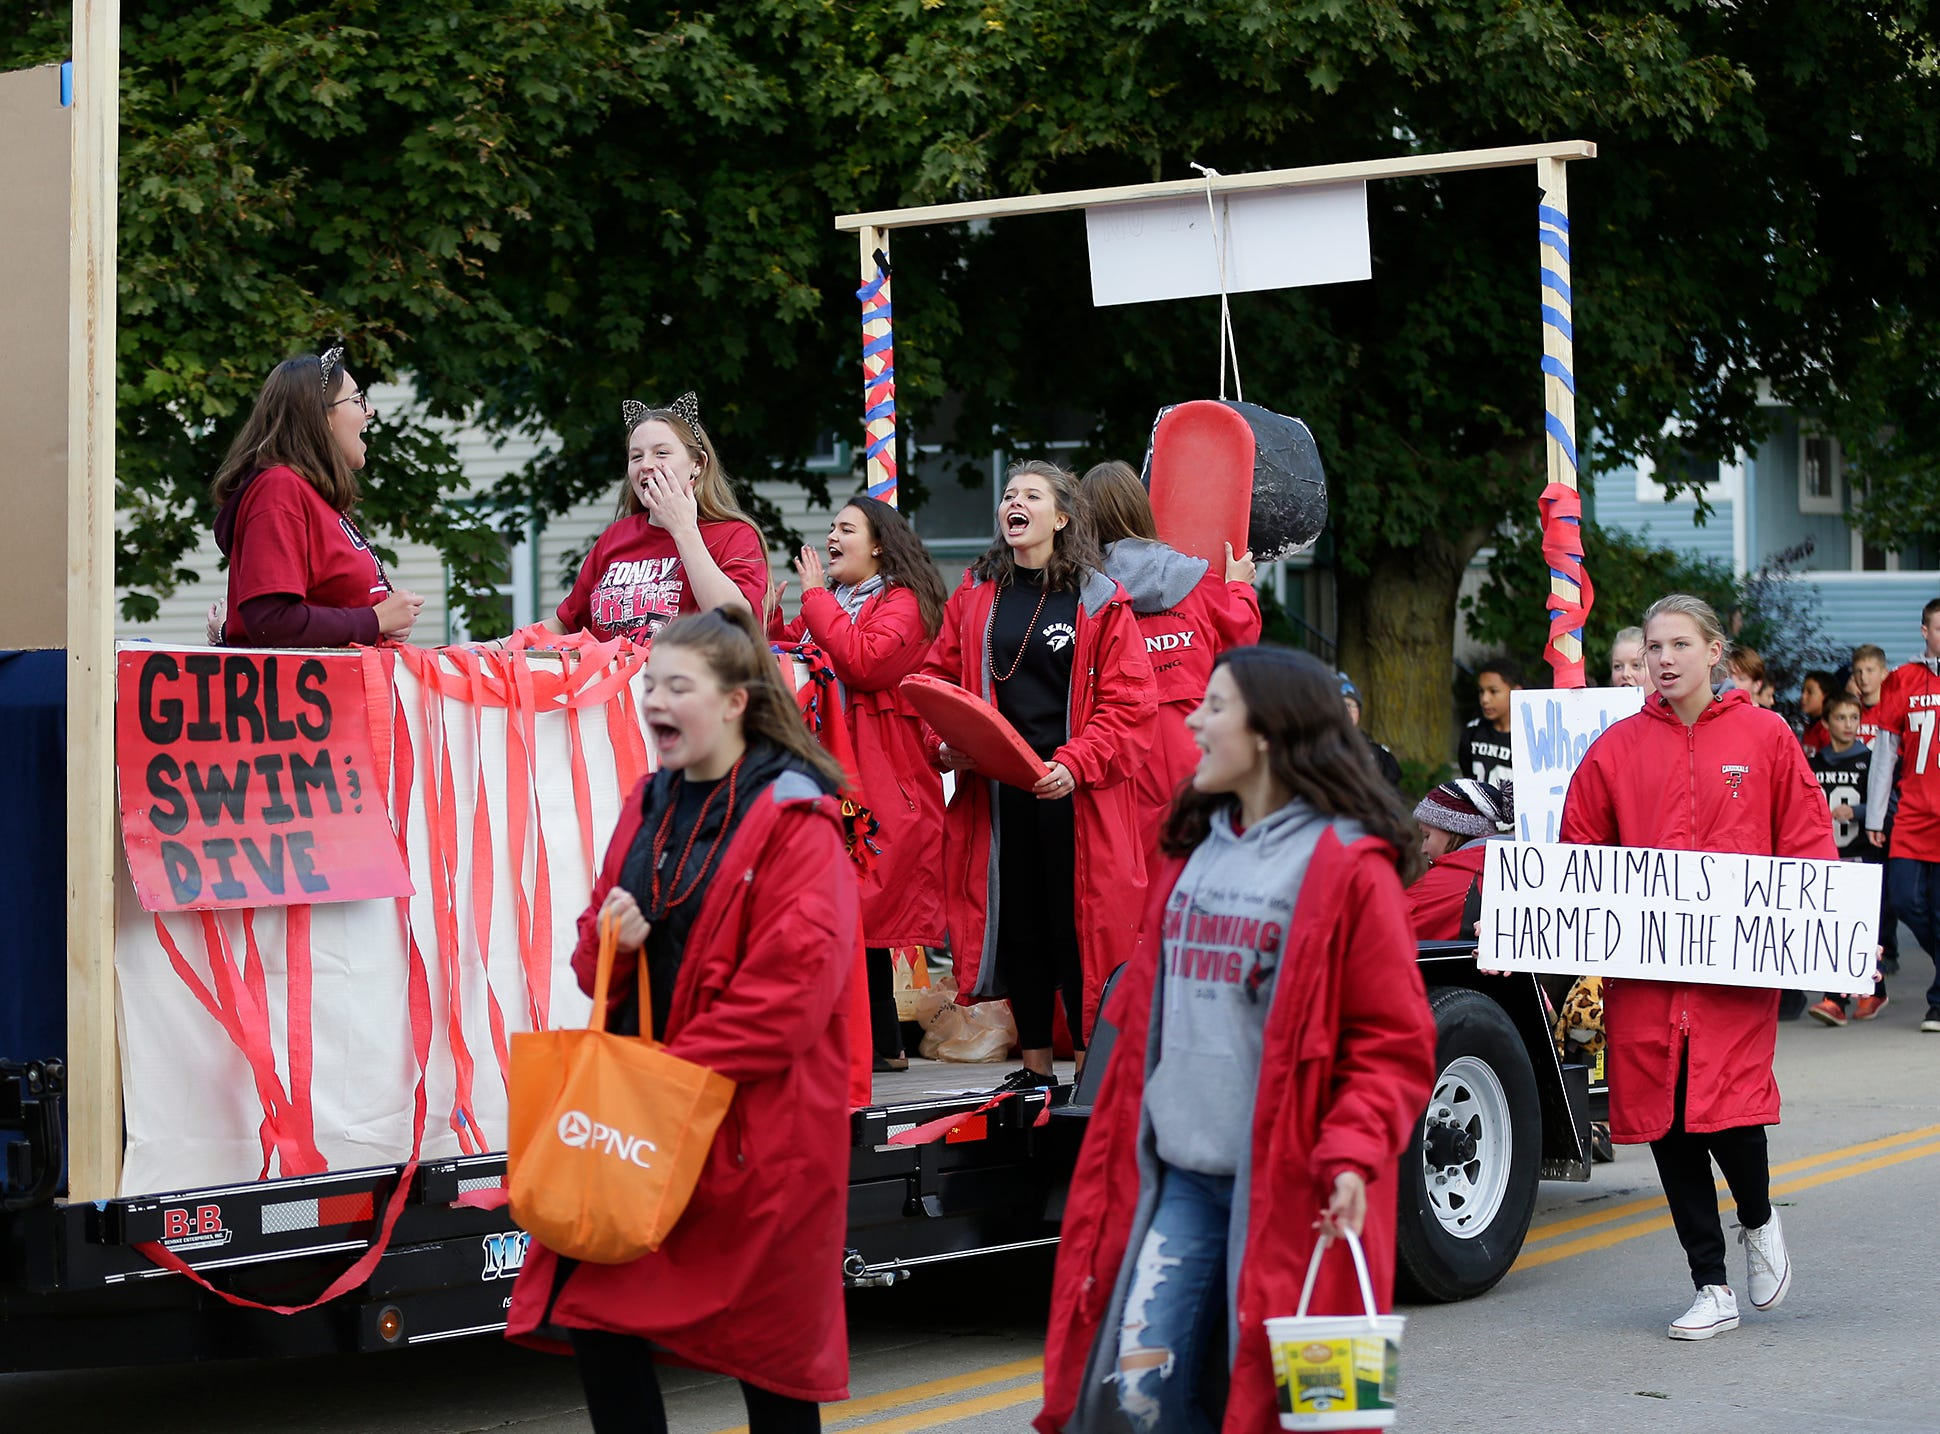 The Fond du Lac High School girls swim and dive team participated in the Fond du Lac High School football homecoming parade Friday, Sept. 28, 2018, which went down portions of Martin Avenue and Ninth Street in Fond du Lac, Wisconsin.